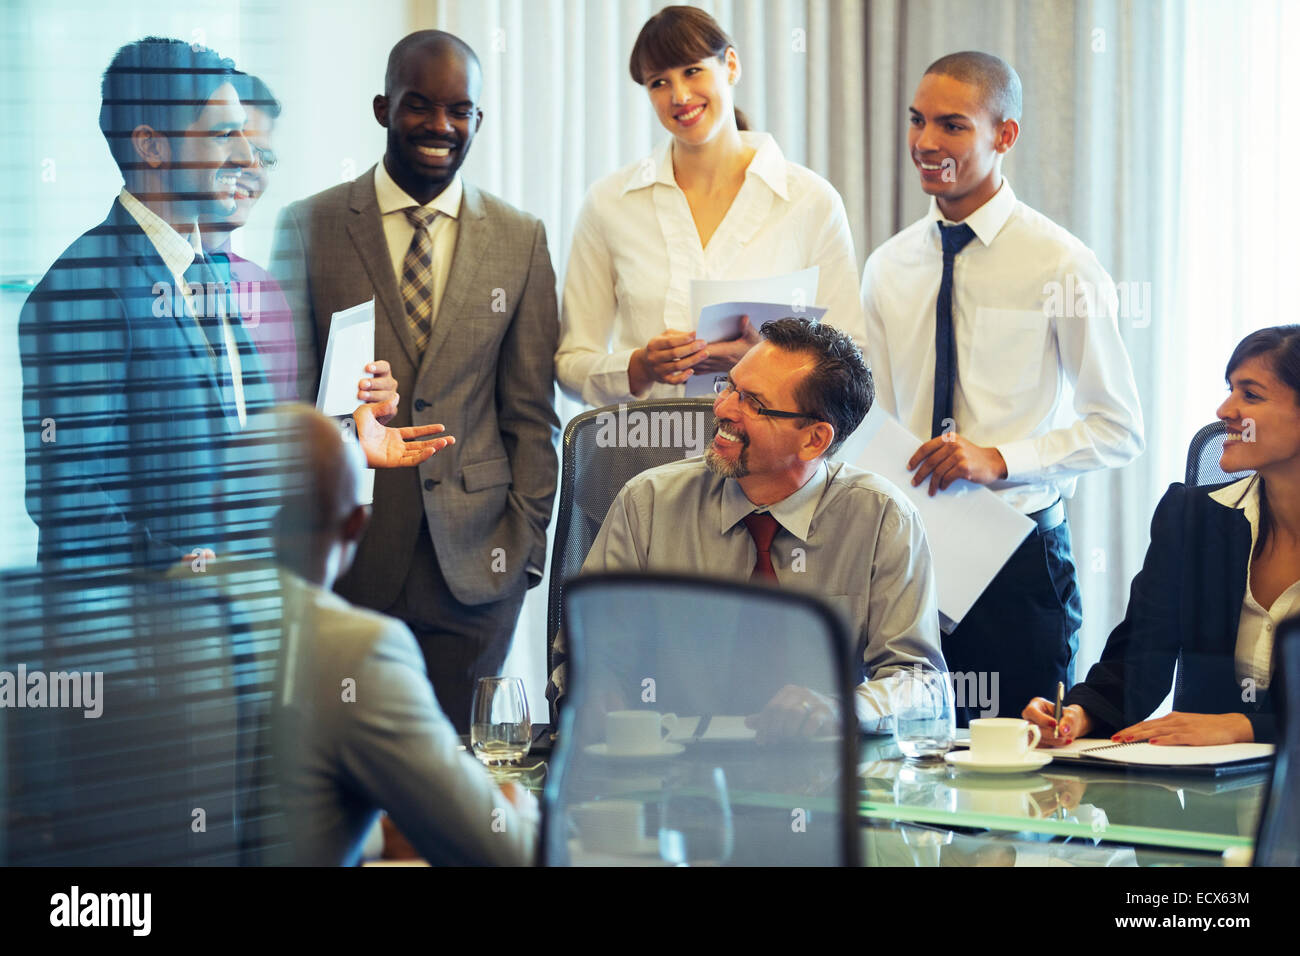 Business people smiling in conference room during business meeting Stock Photo